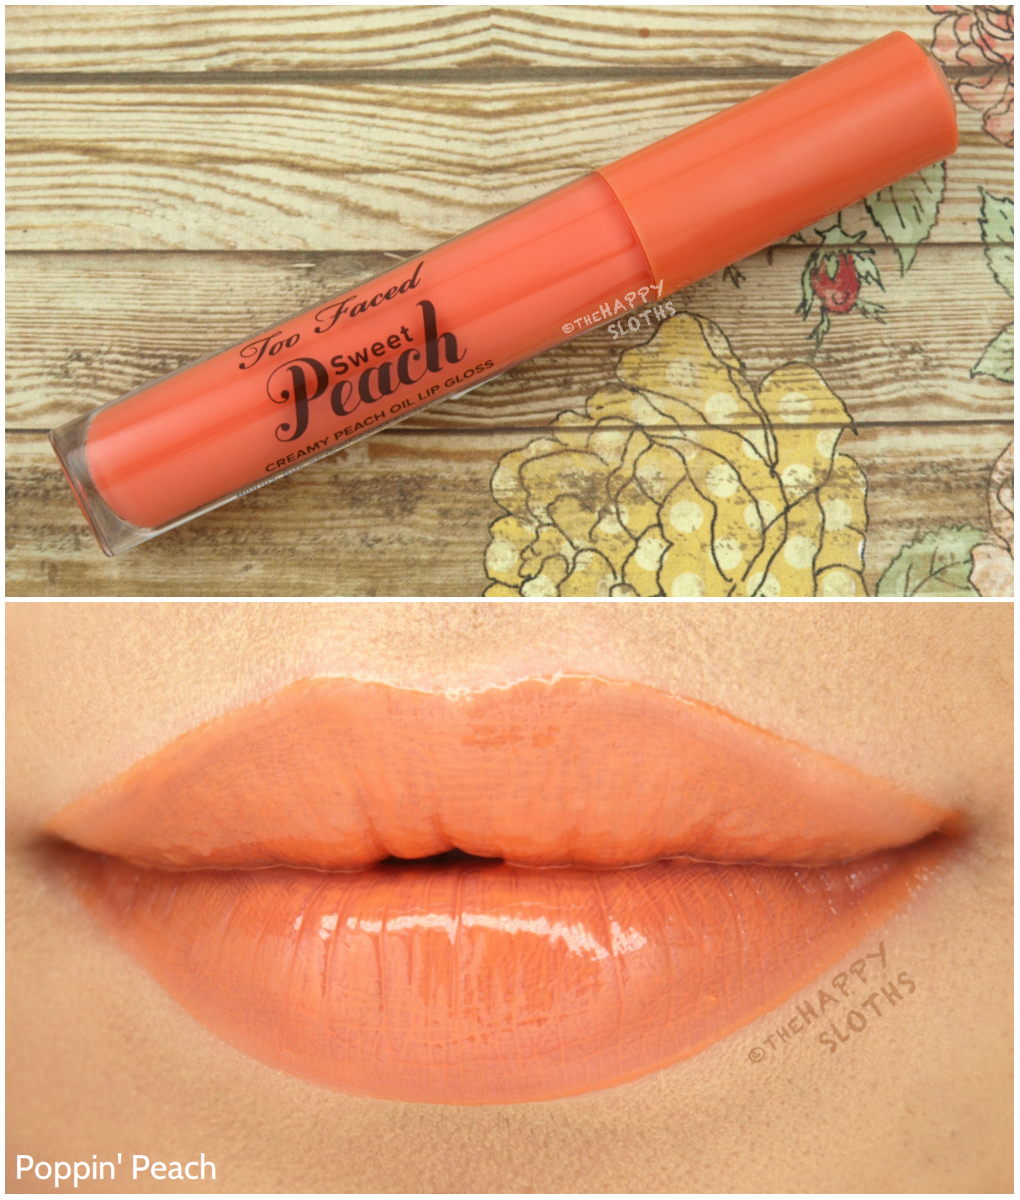 Too Faced Sweet Peach Lip Gloss Poppin' Peach